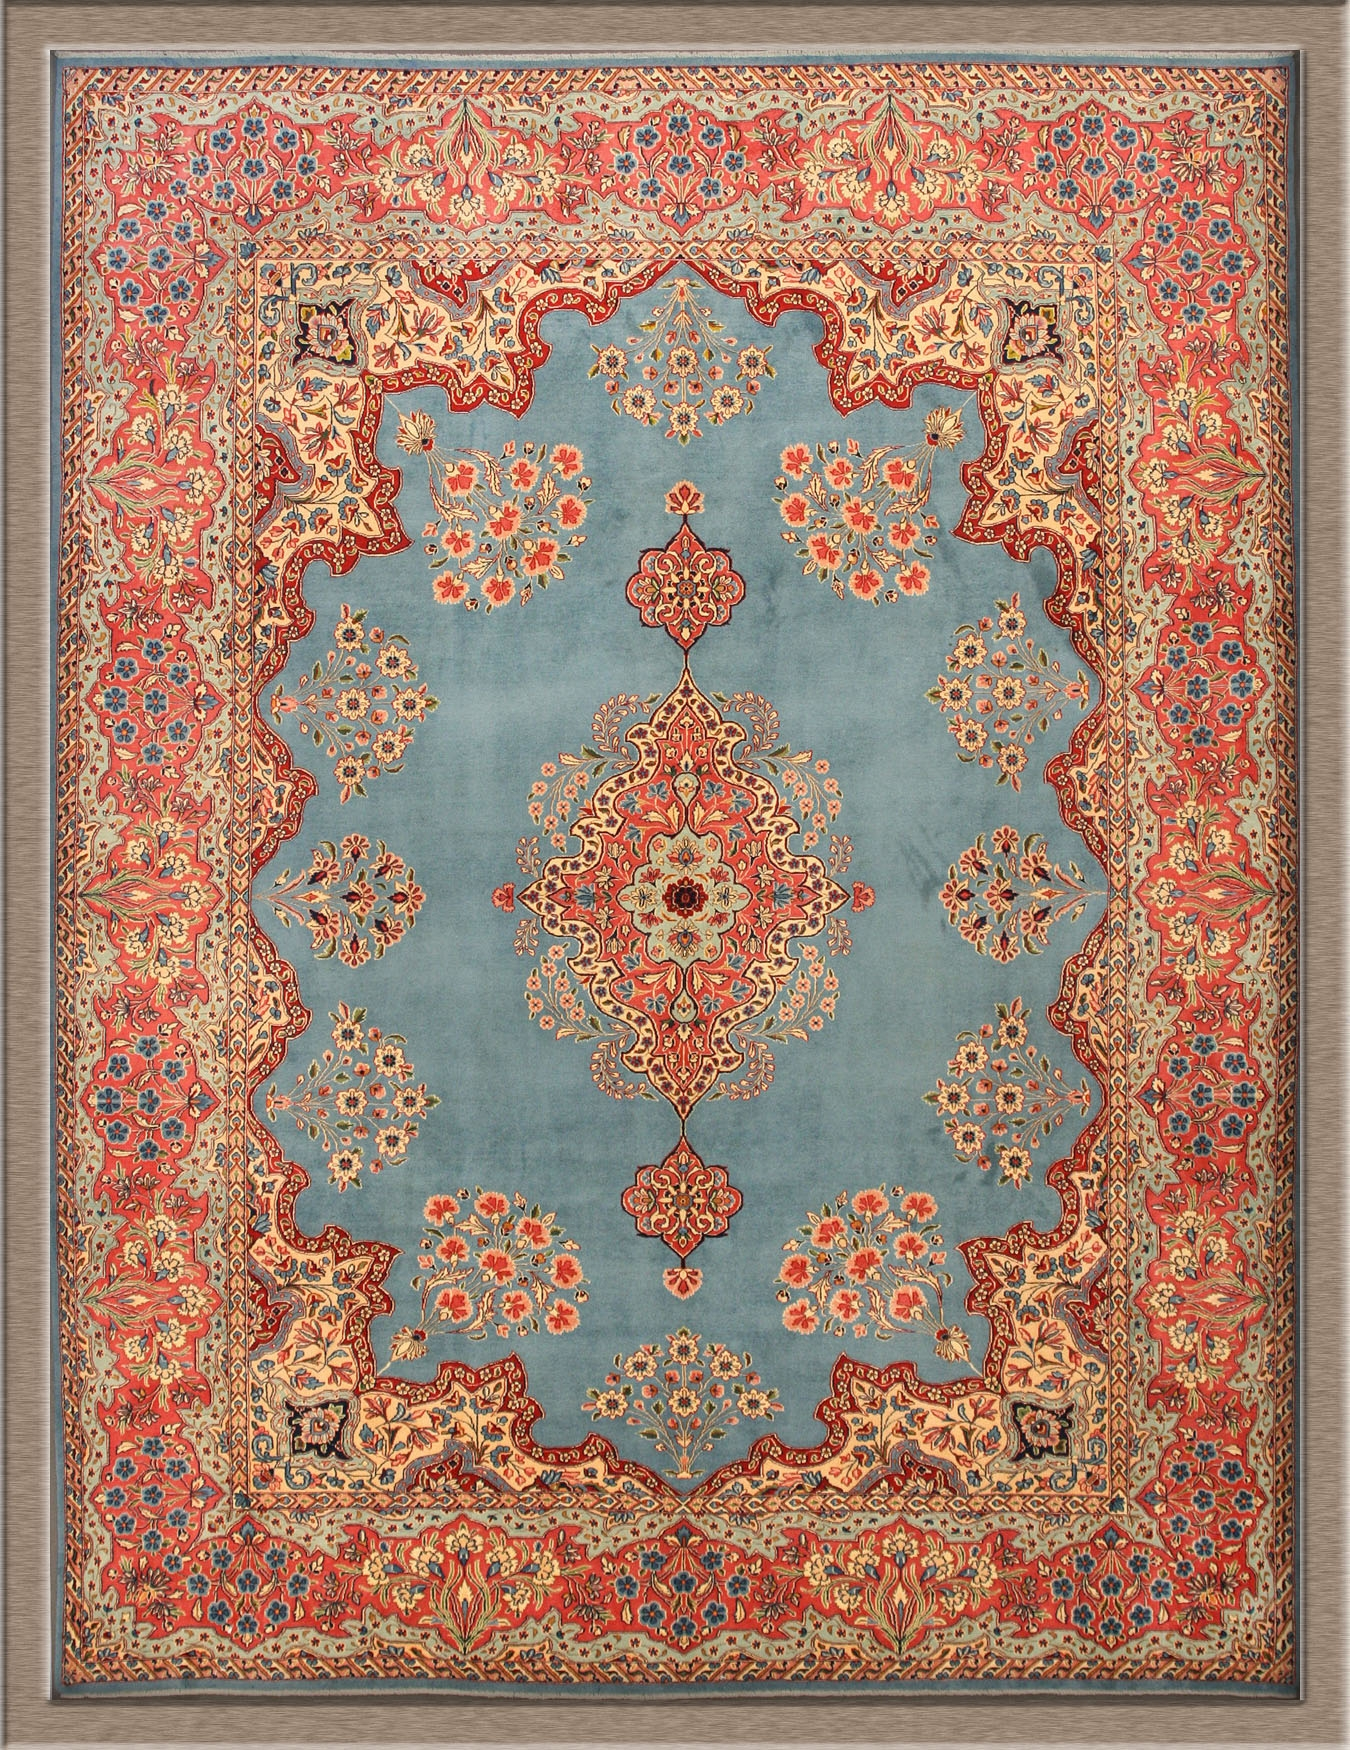 The Exotic Persian Rugs For Your Living Room Floor Decor Persian With Regard To Blue Persian Rugs (View 14 of 15)